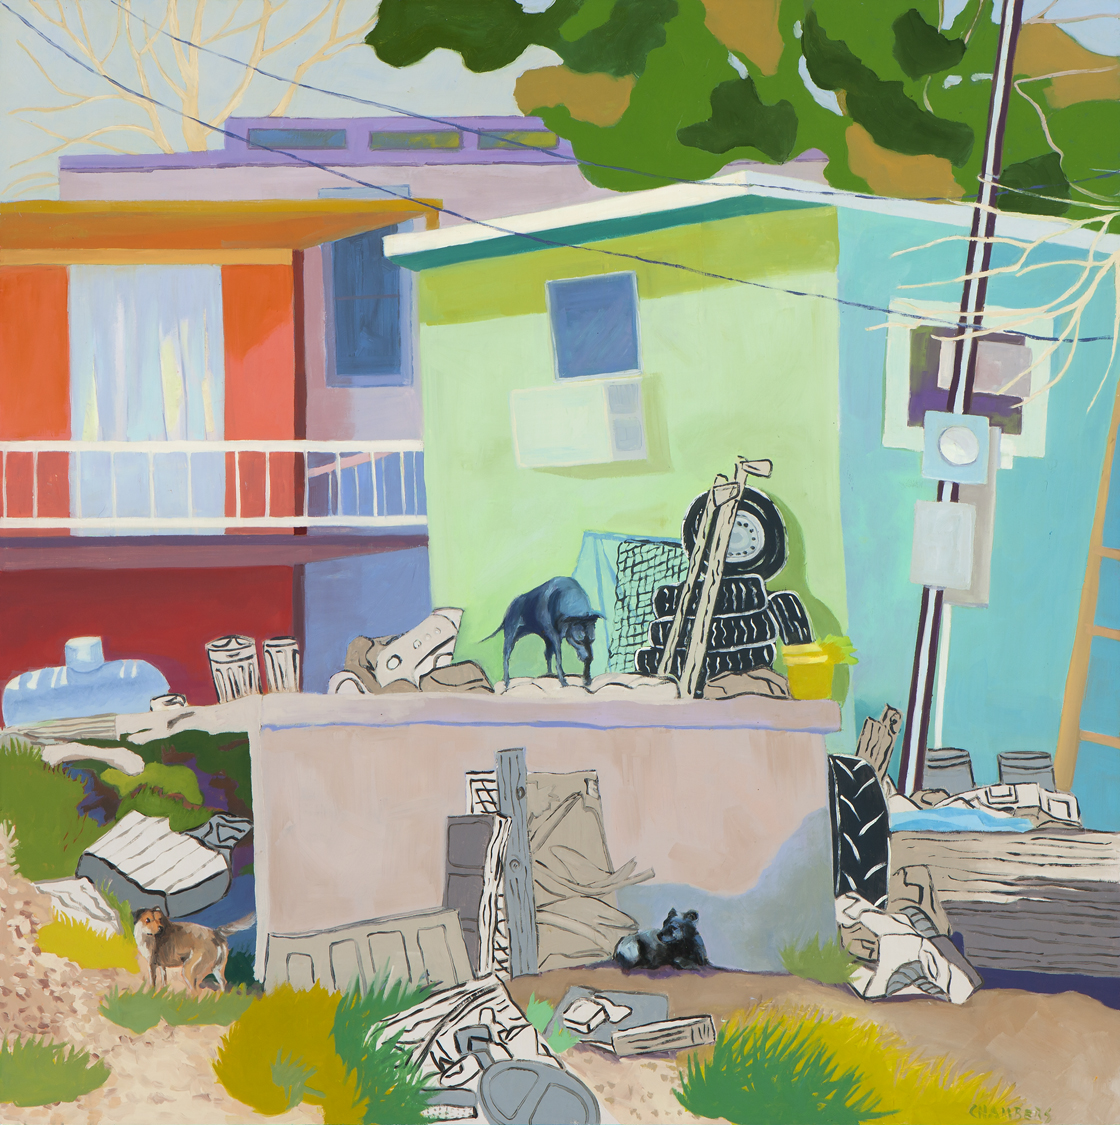 Lindy Chambers, Dogs Rule, 2012. Oil on gessoboard, 30 x 30 inches